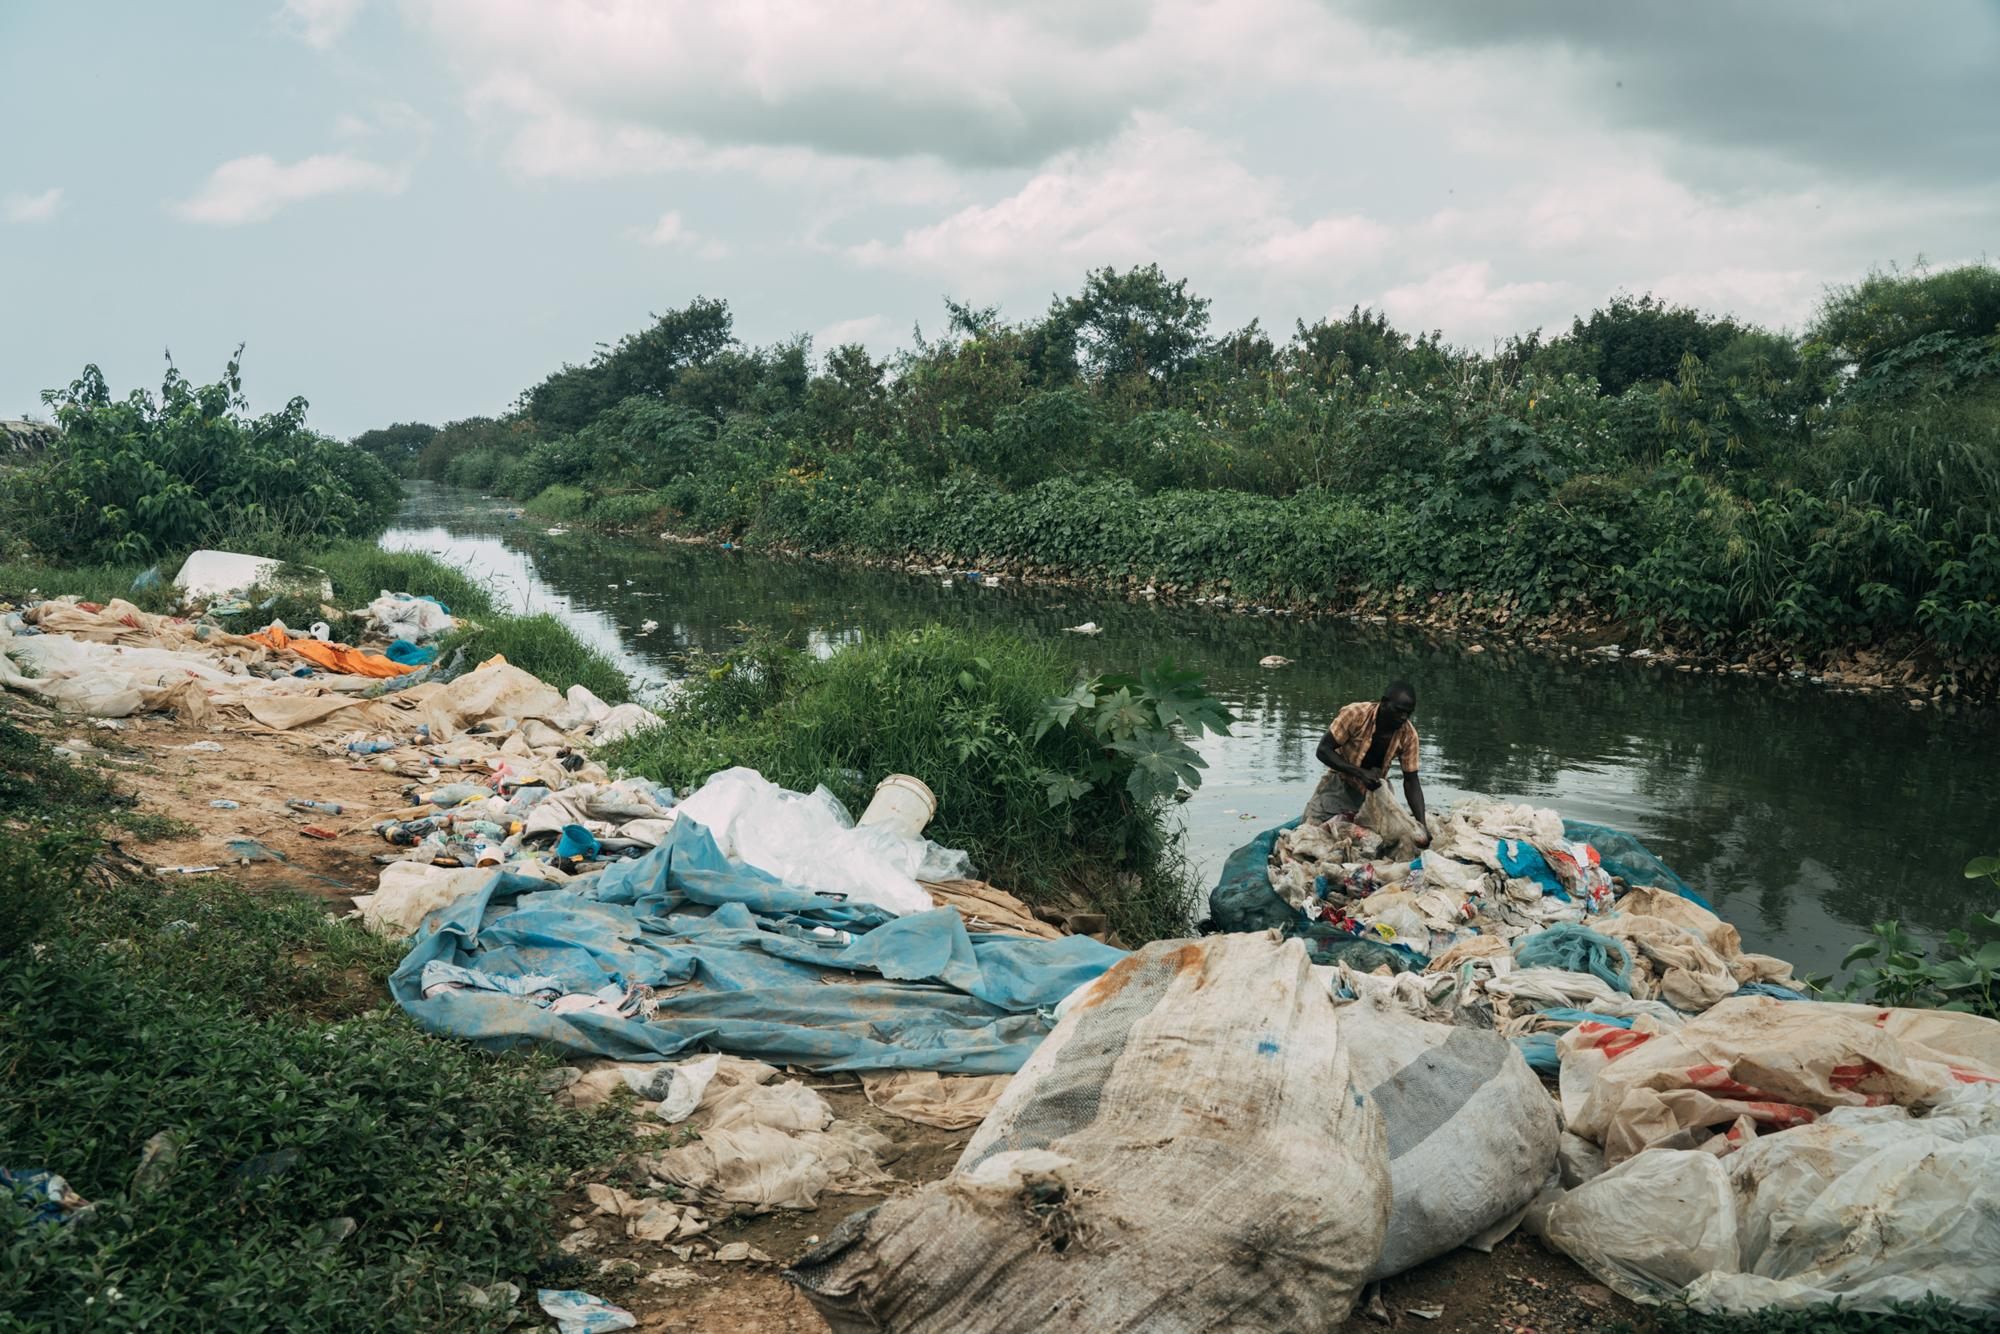 Plastic collector is cleaning and sorting single use plastic bags and bottles recovered from Mallam river. Accra waste collection project was one of 6 winners of the best climate project in the world announced by C40 and Bloomberg Philanthropies at the 2019. Story for AP Bloomberg Philanthropies.